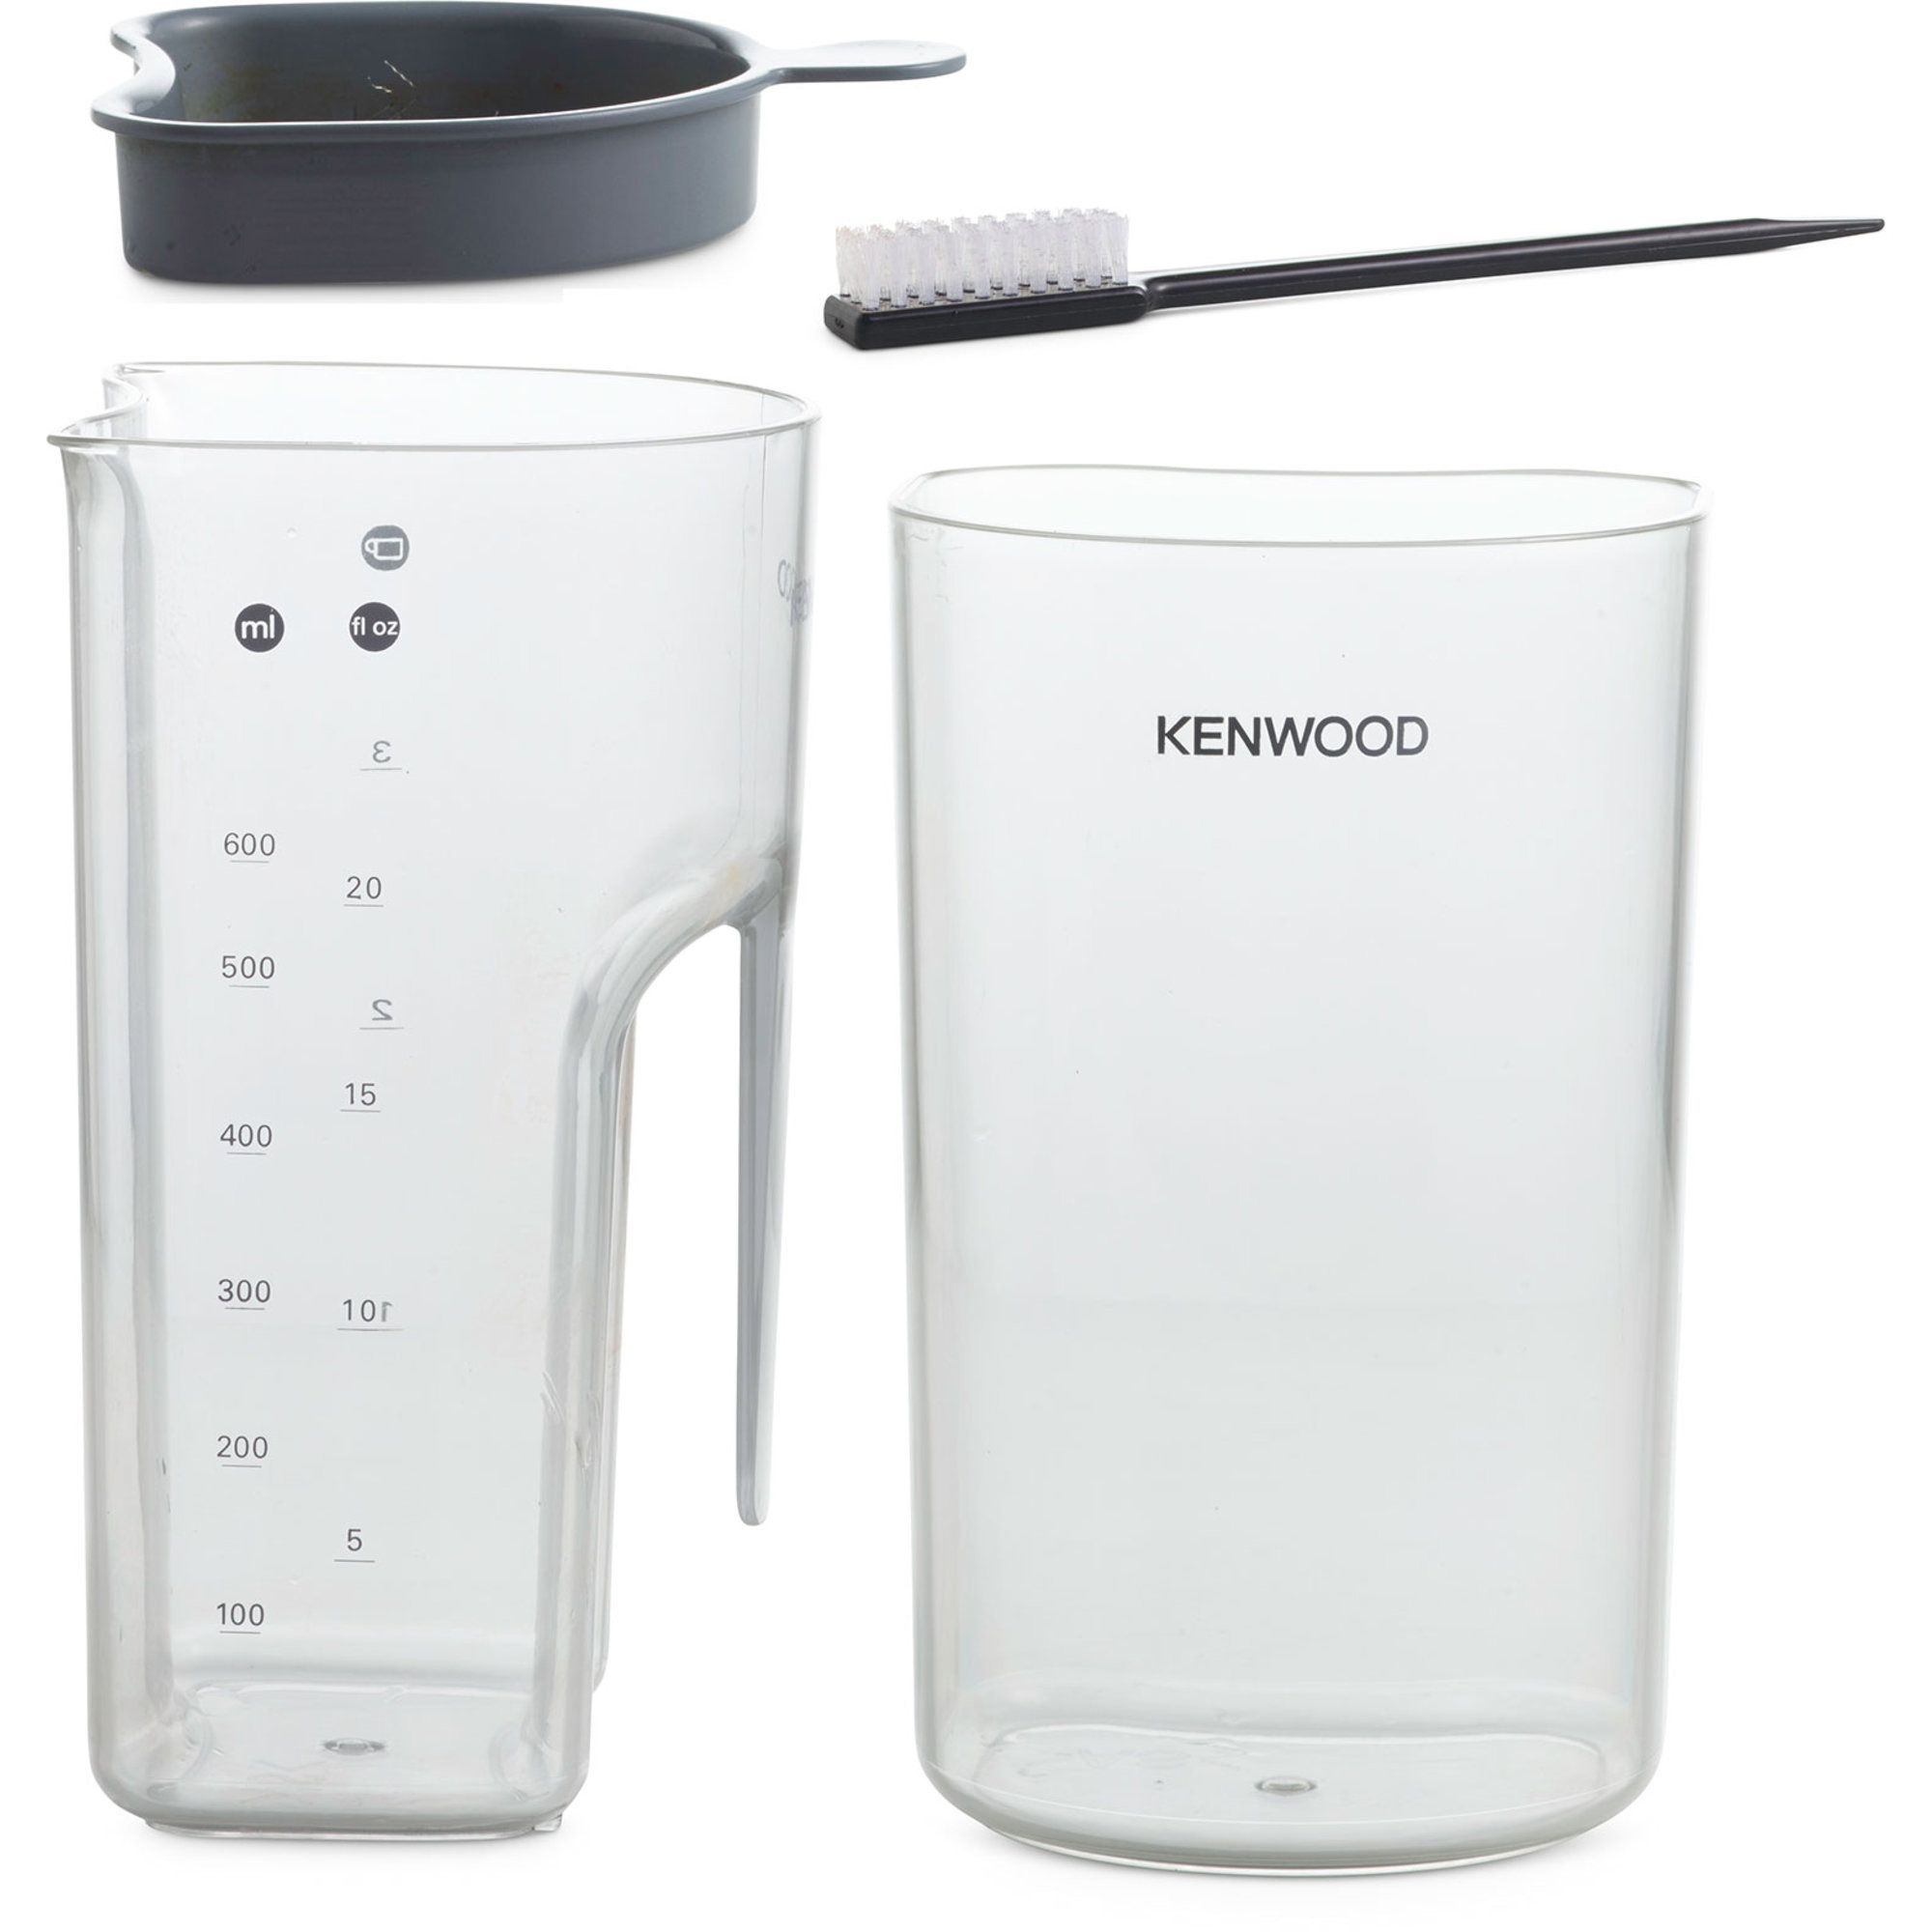 Kenwood Slow Juicer Jmp 601 : JMP601SI PureJuice Slow Juicer fra Kenwood Gratis Levering